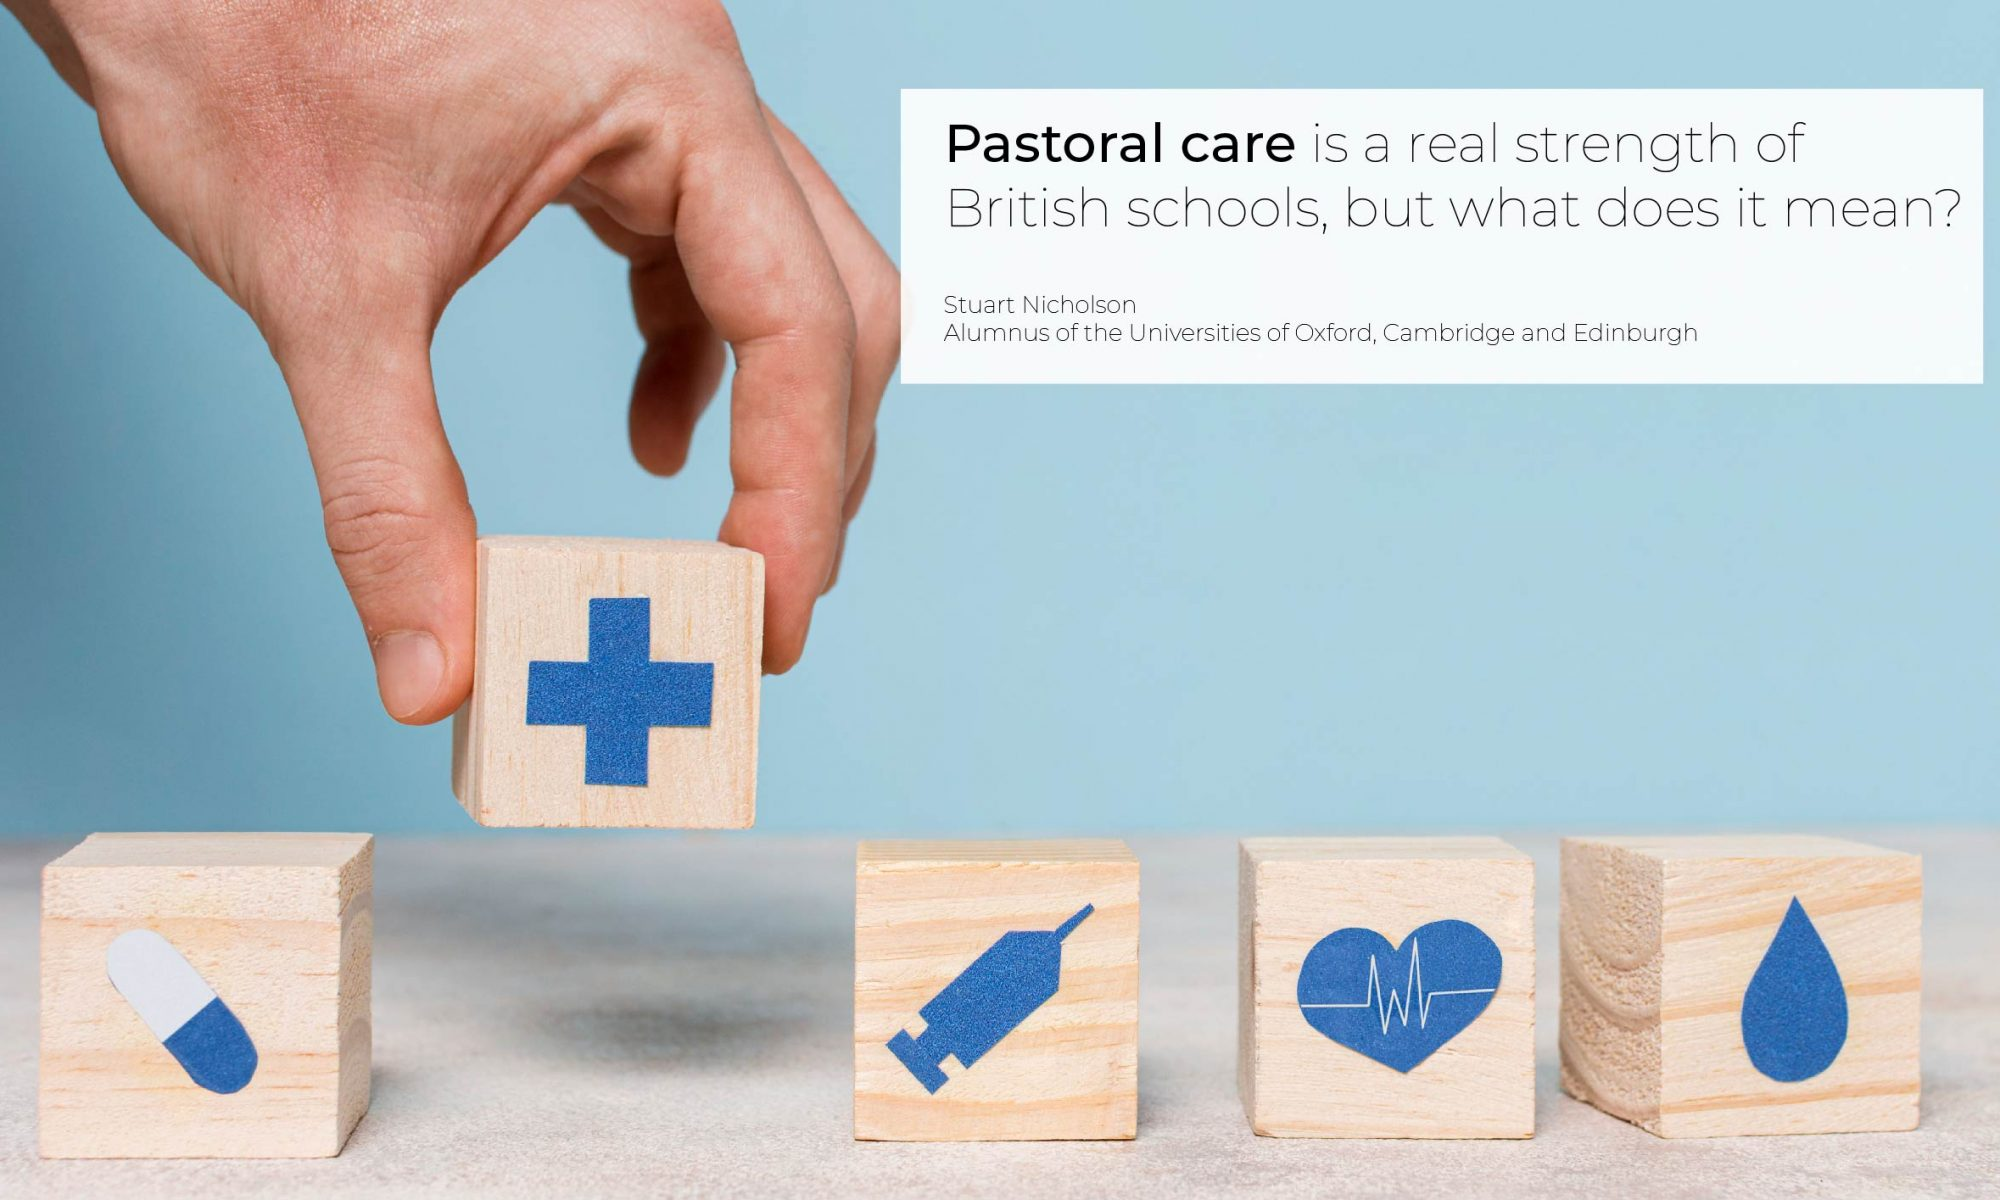 - Pastoral care is a real strength of British schools, but what does it mean?